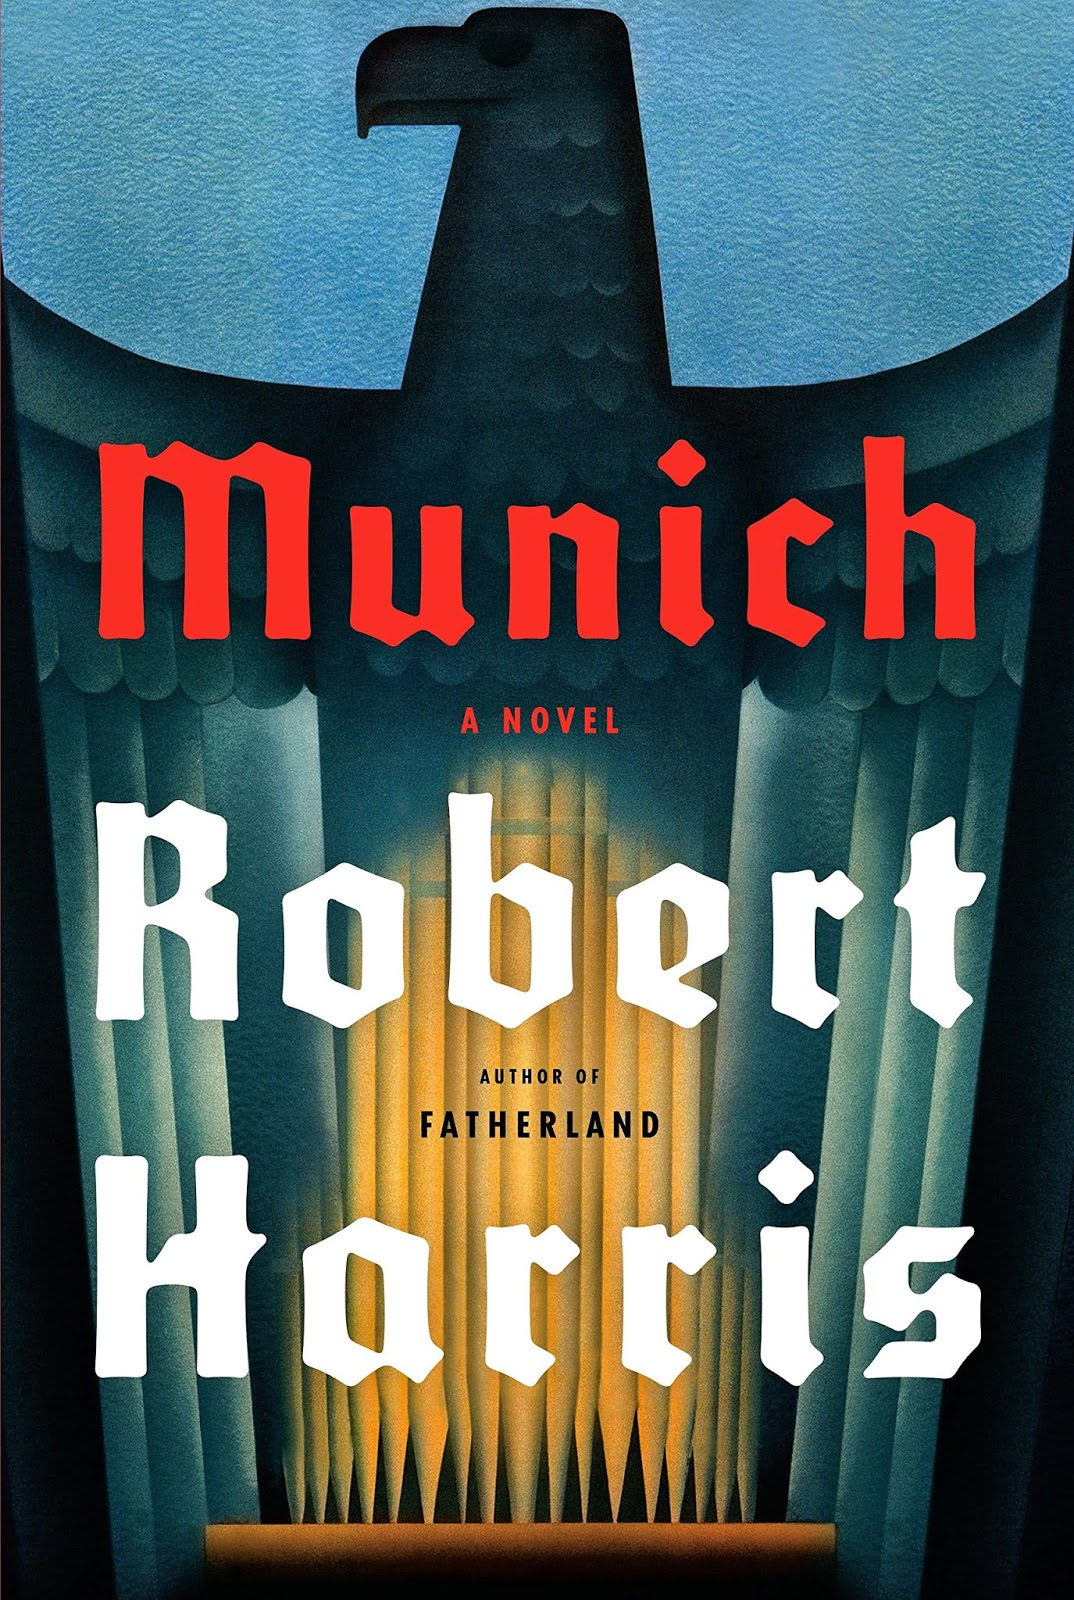 Book cover for Robert Harris's Munich in the South Manchester, Chorlton, and Didsbury book group